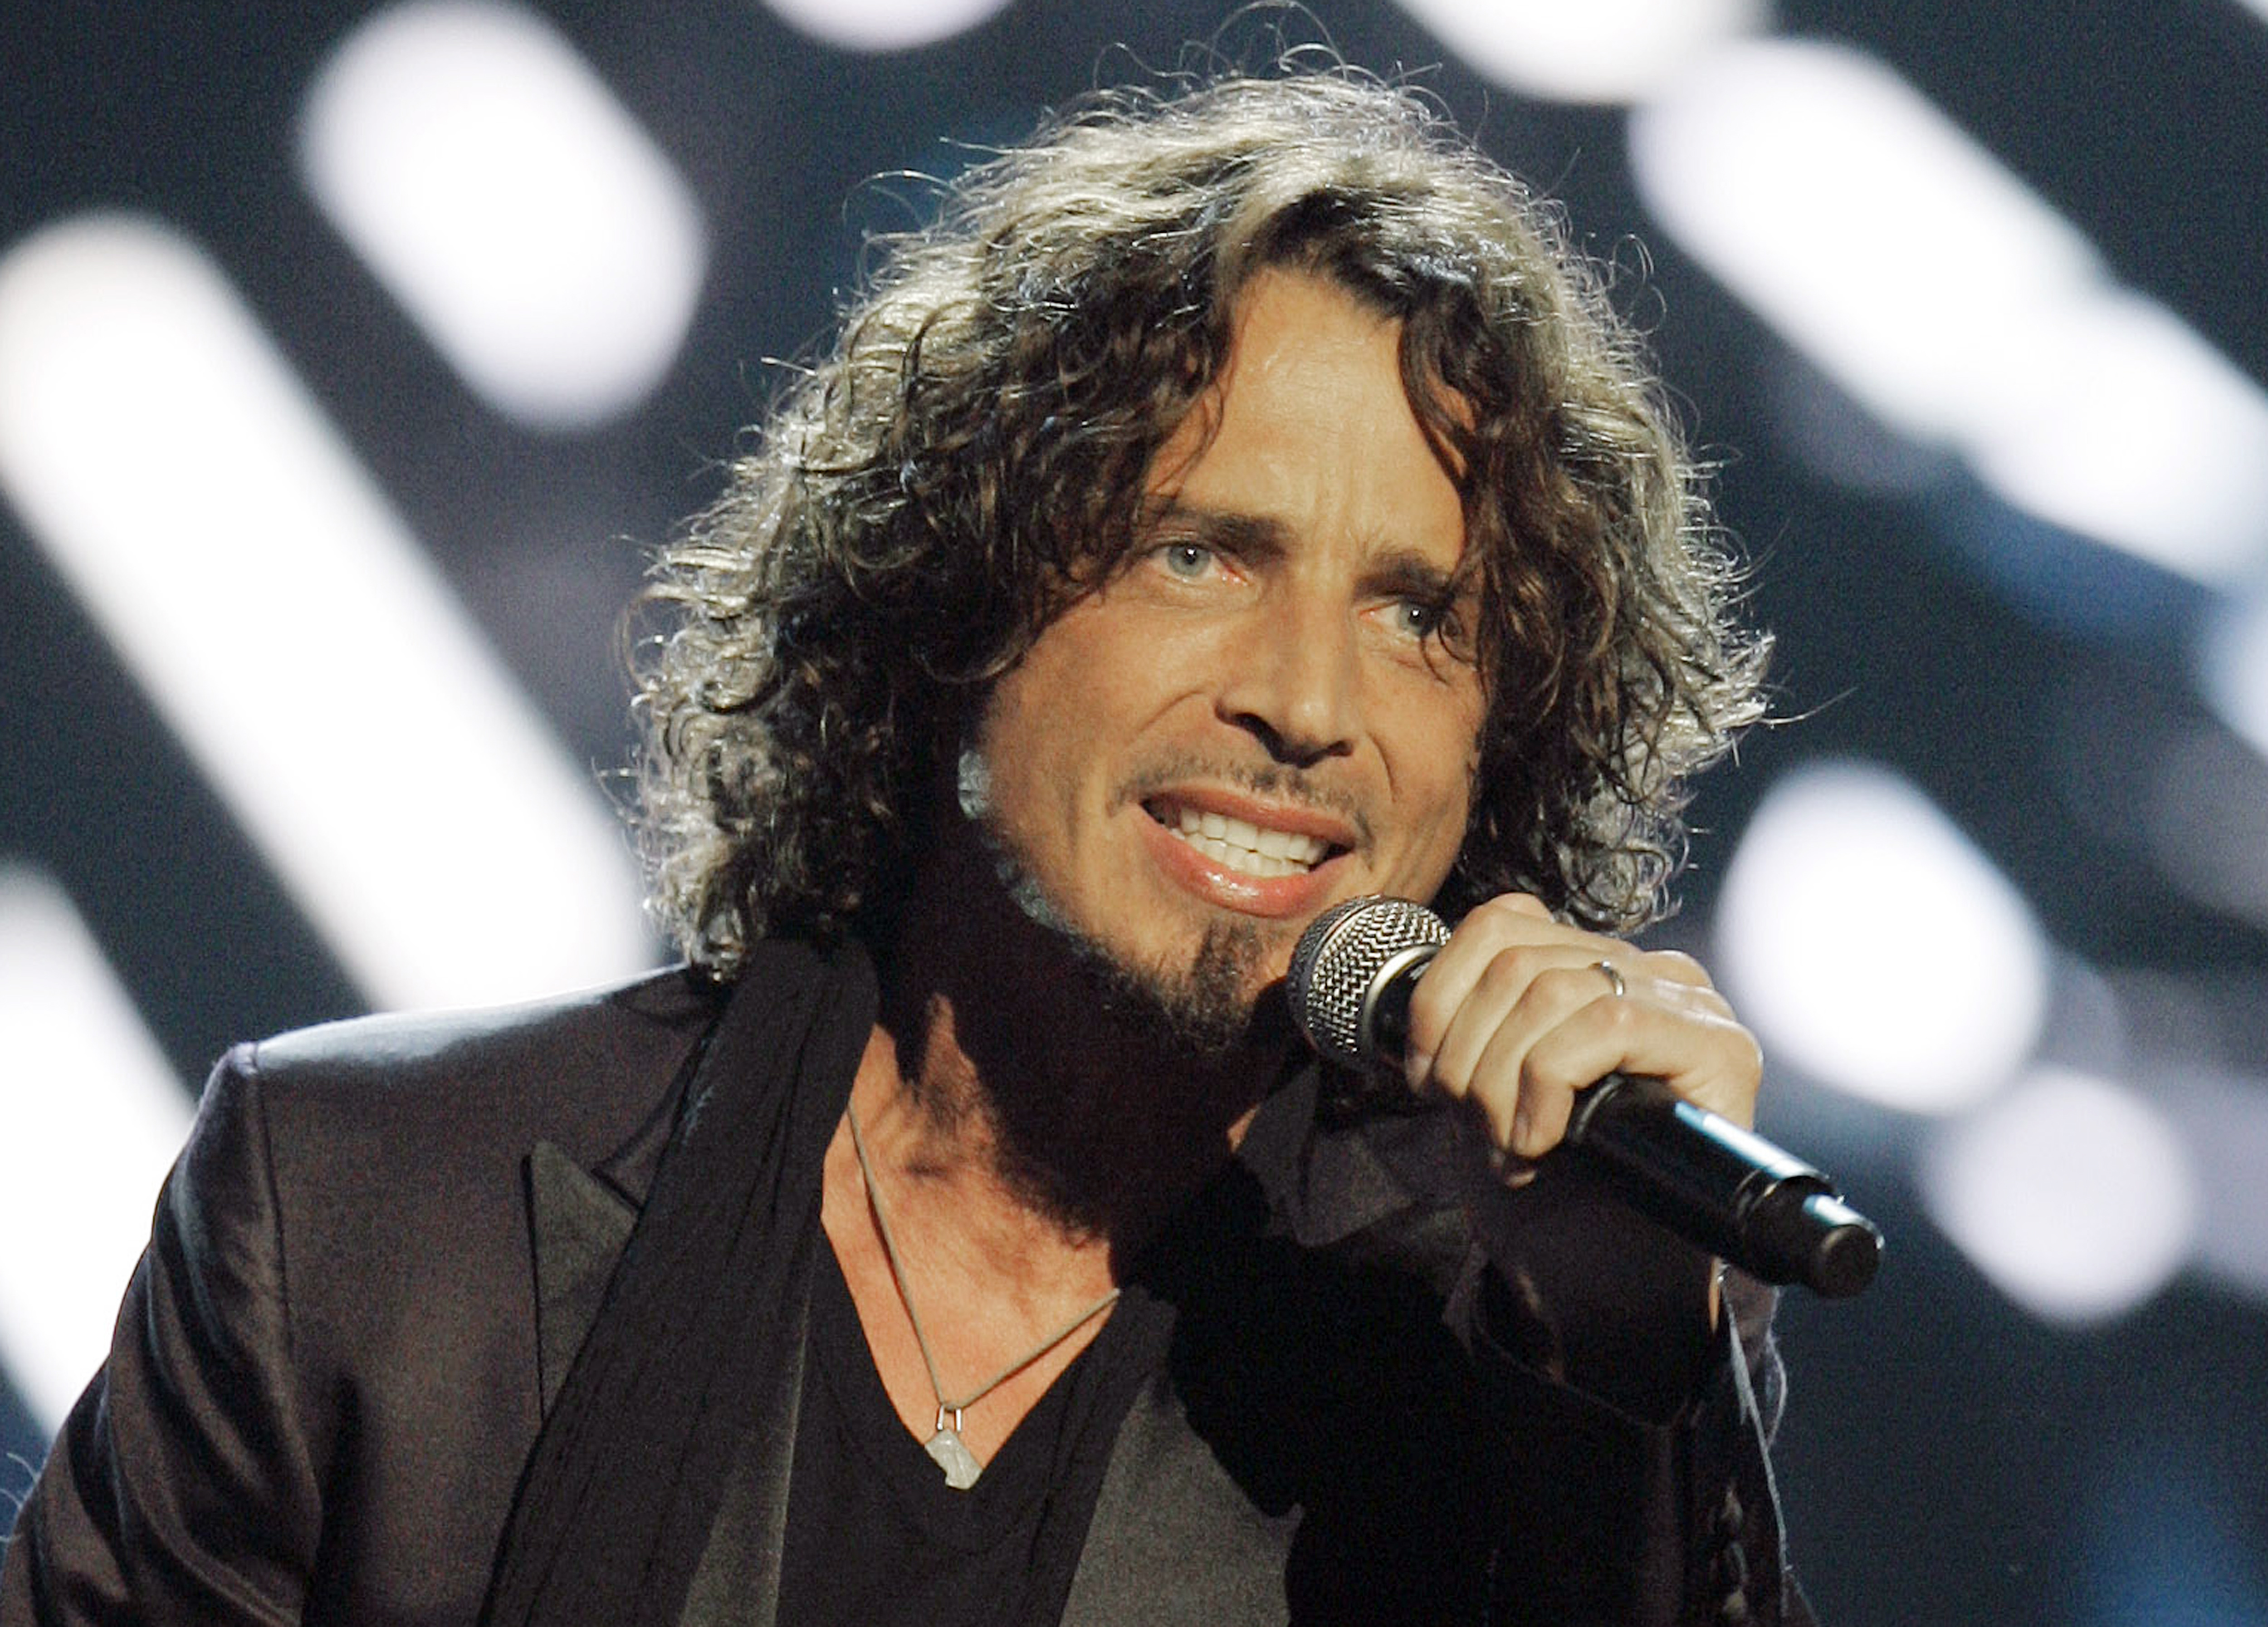 242ce2946f1 Daughter's heartbreaking tribute for Chris Cornell: 'I know you are still  here'